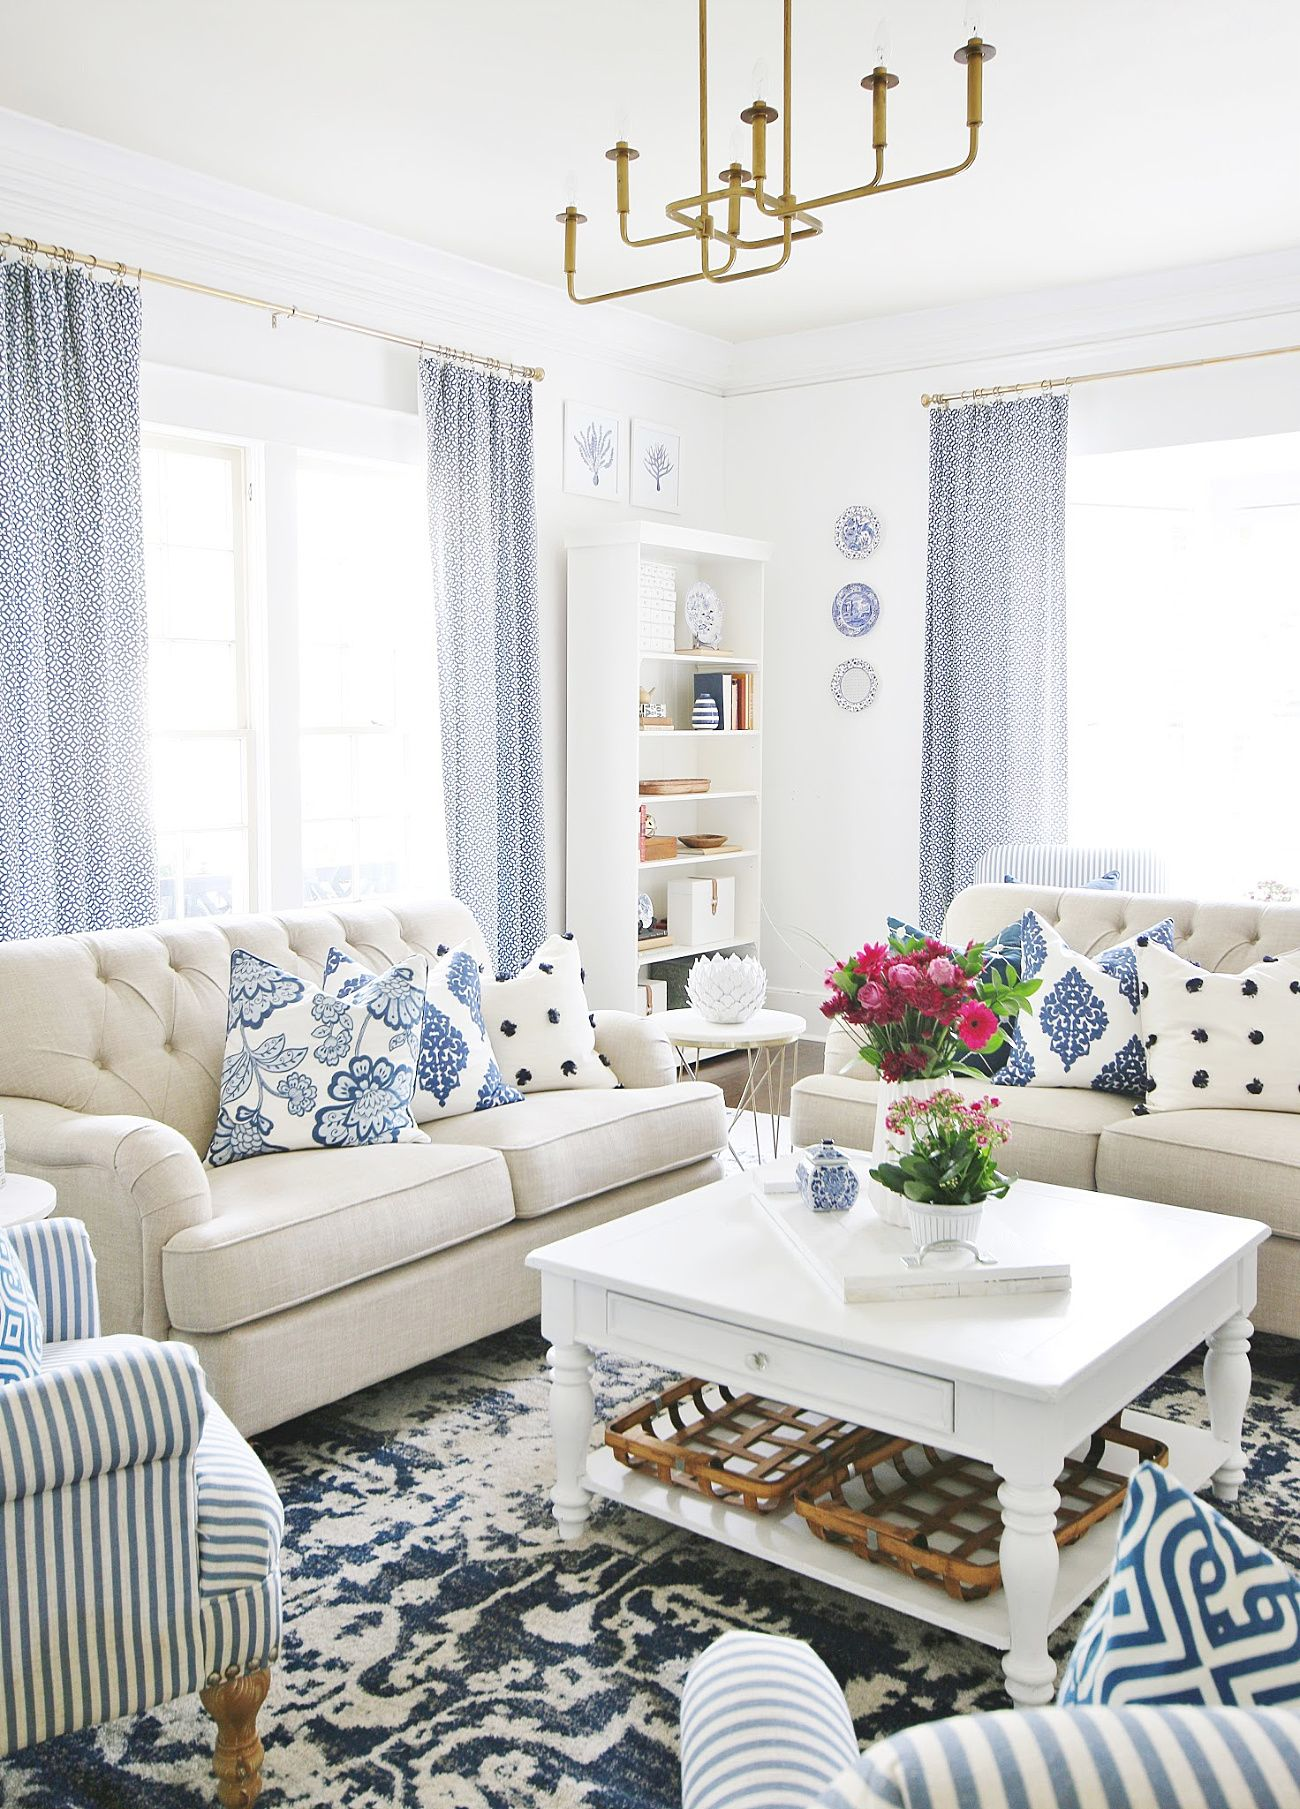 How To Pick Paint Colors For An Entire House | Blue, white ...